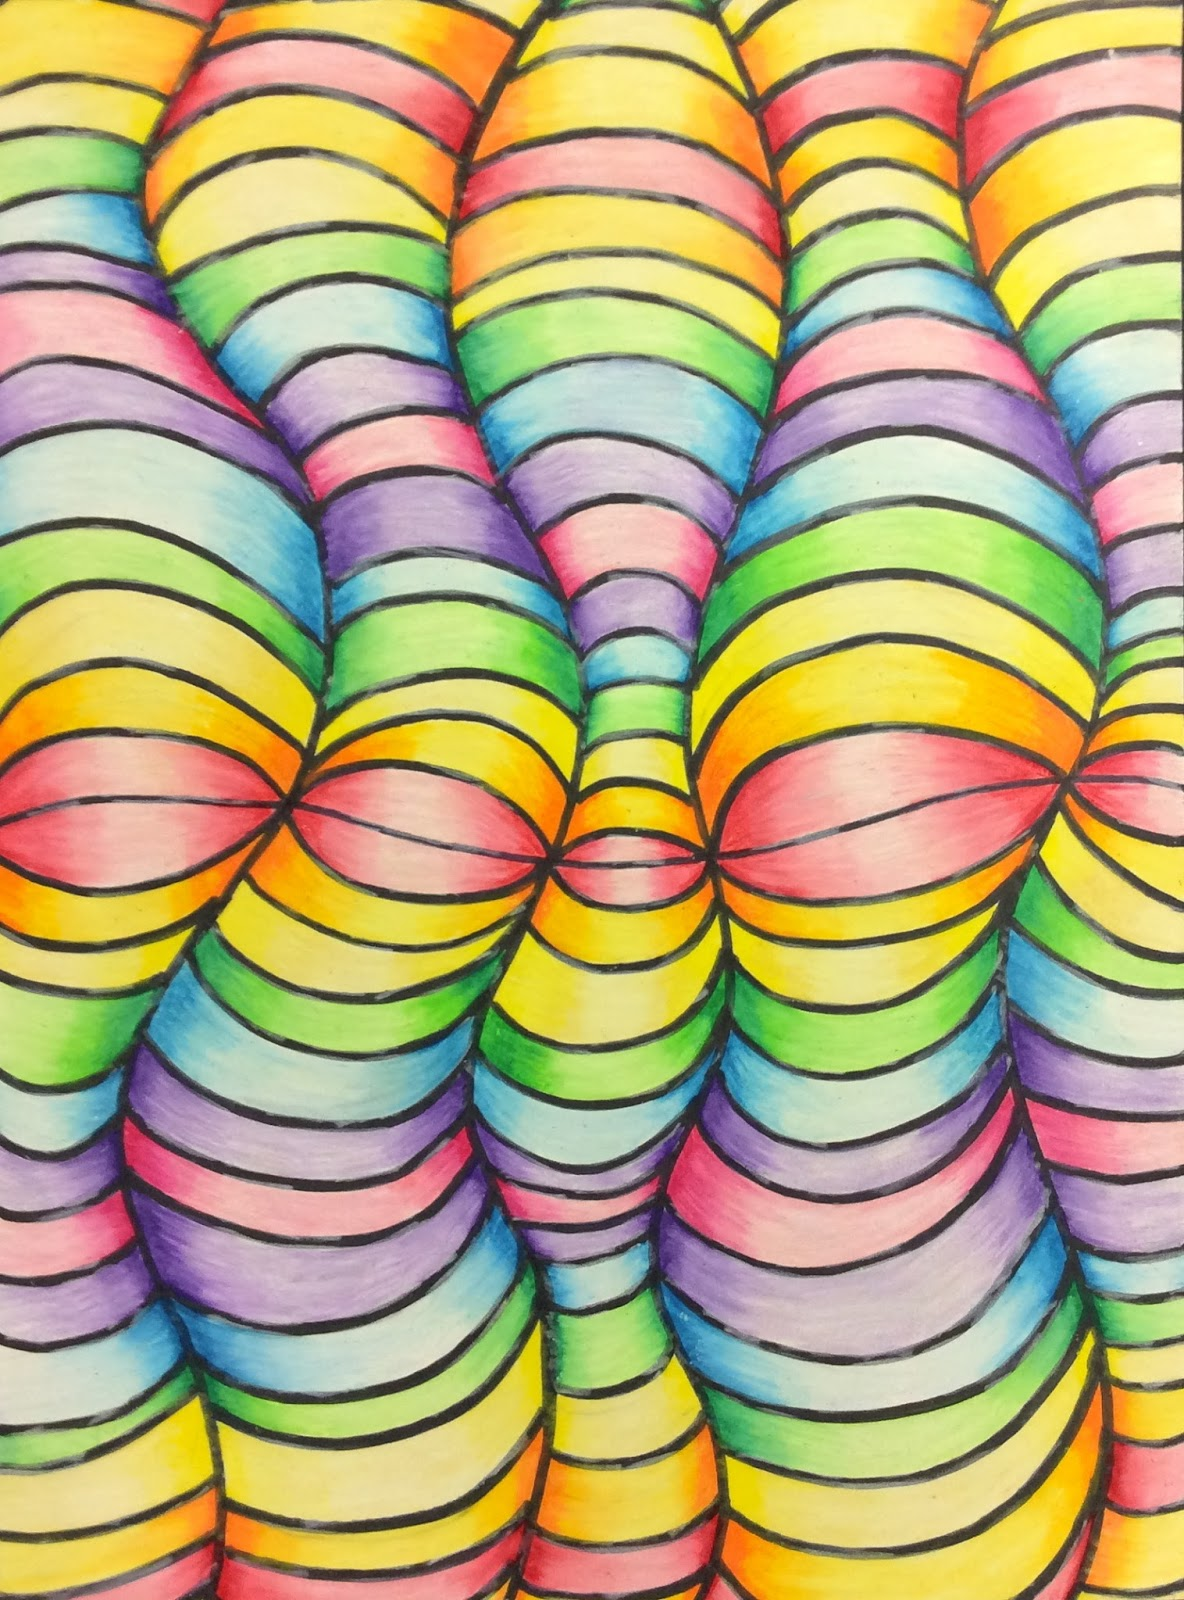 intro to art Find and save ideas about intro to art on pinterest | see more ideas about primary school teaching courses, poetry unit and primary school art.